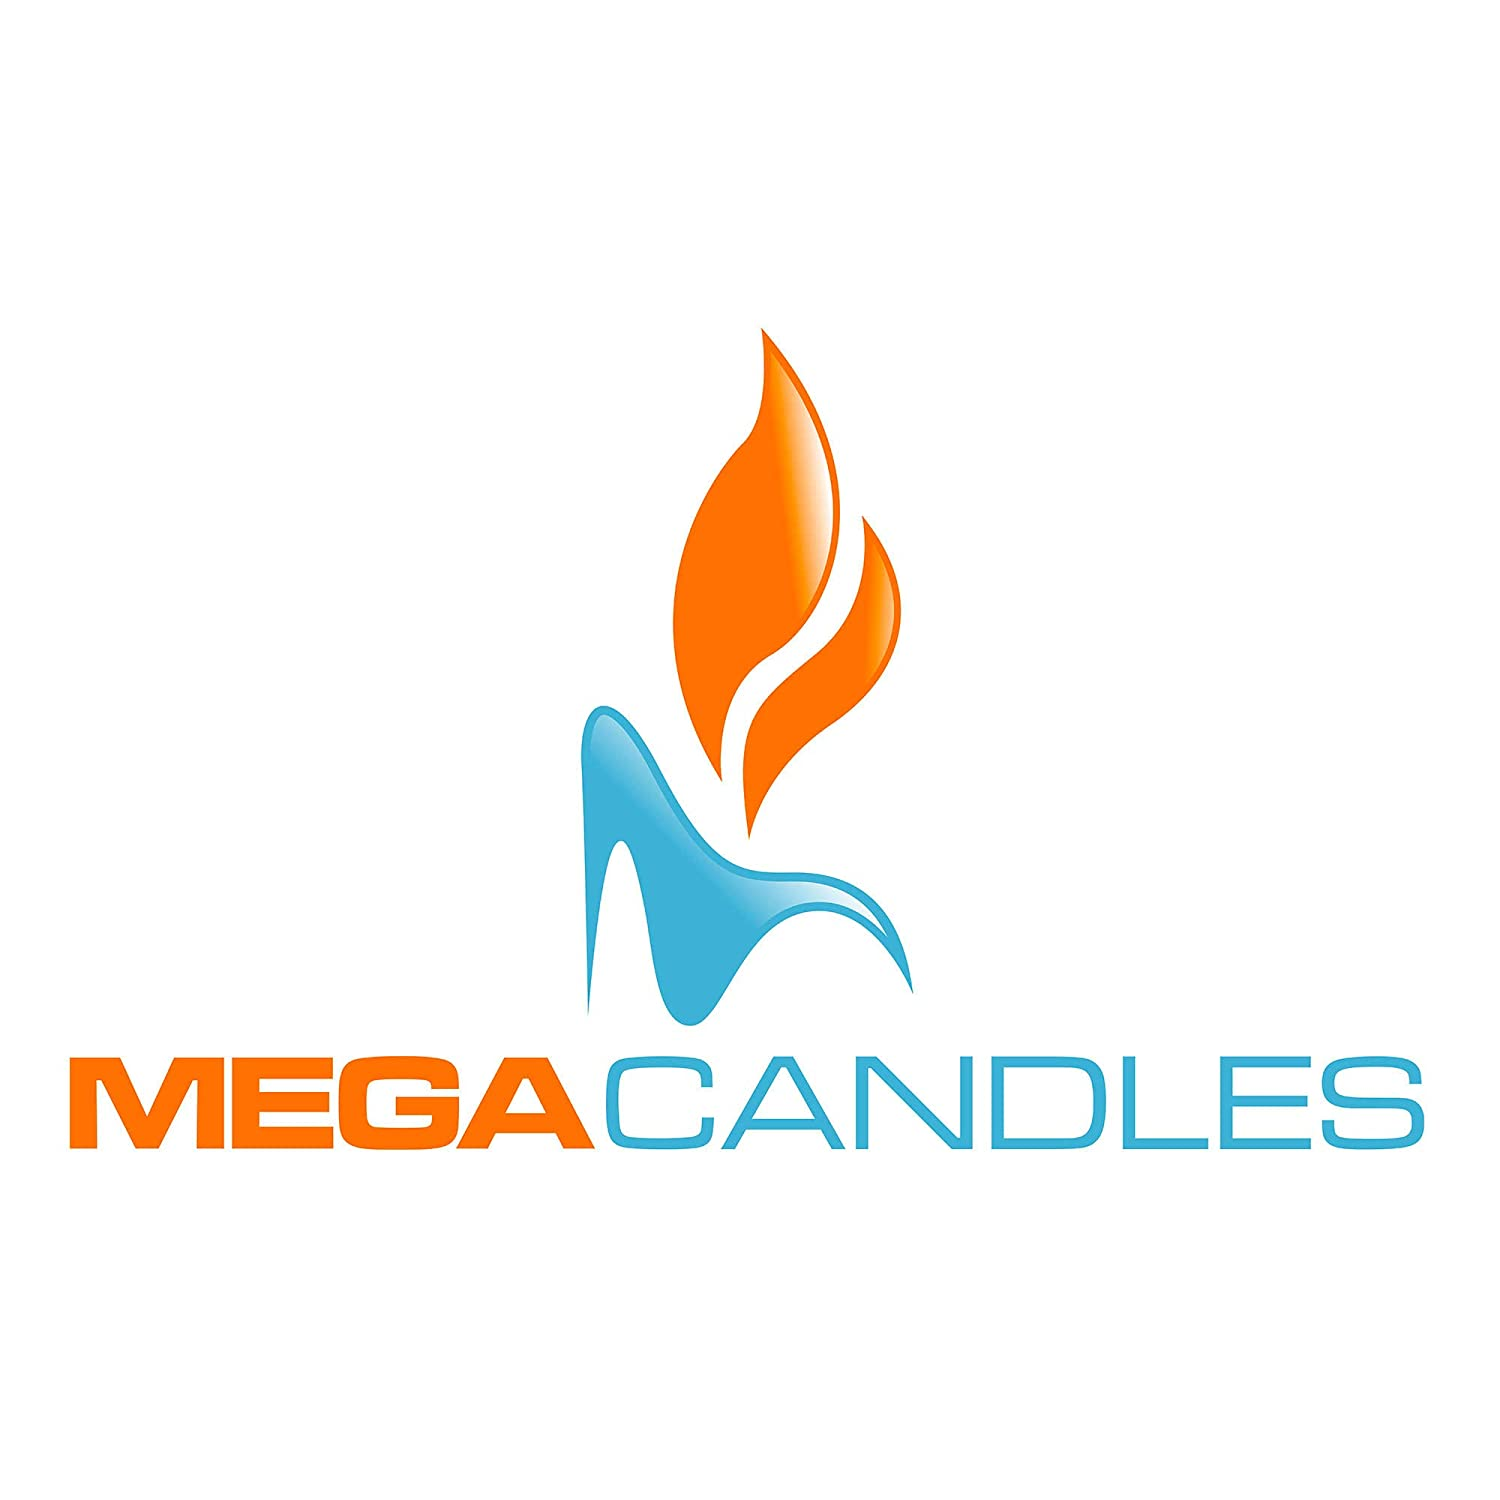 Birthdays Celebrations /& More Mega Candles 4 pcs Unscented White Floating Rose Petals Flower Candle Baby Showers for Home D/écor Wedding Receptions Hand Poured Wax Candles 2 Diameter